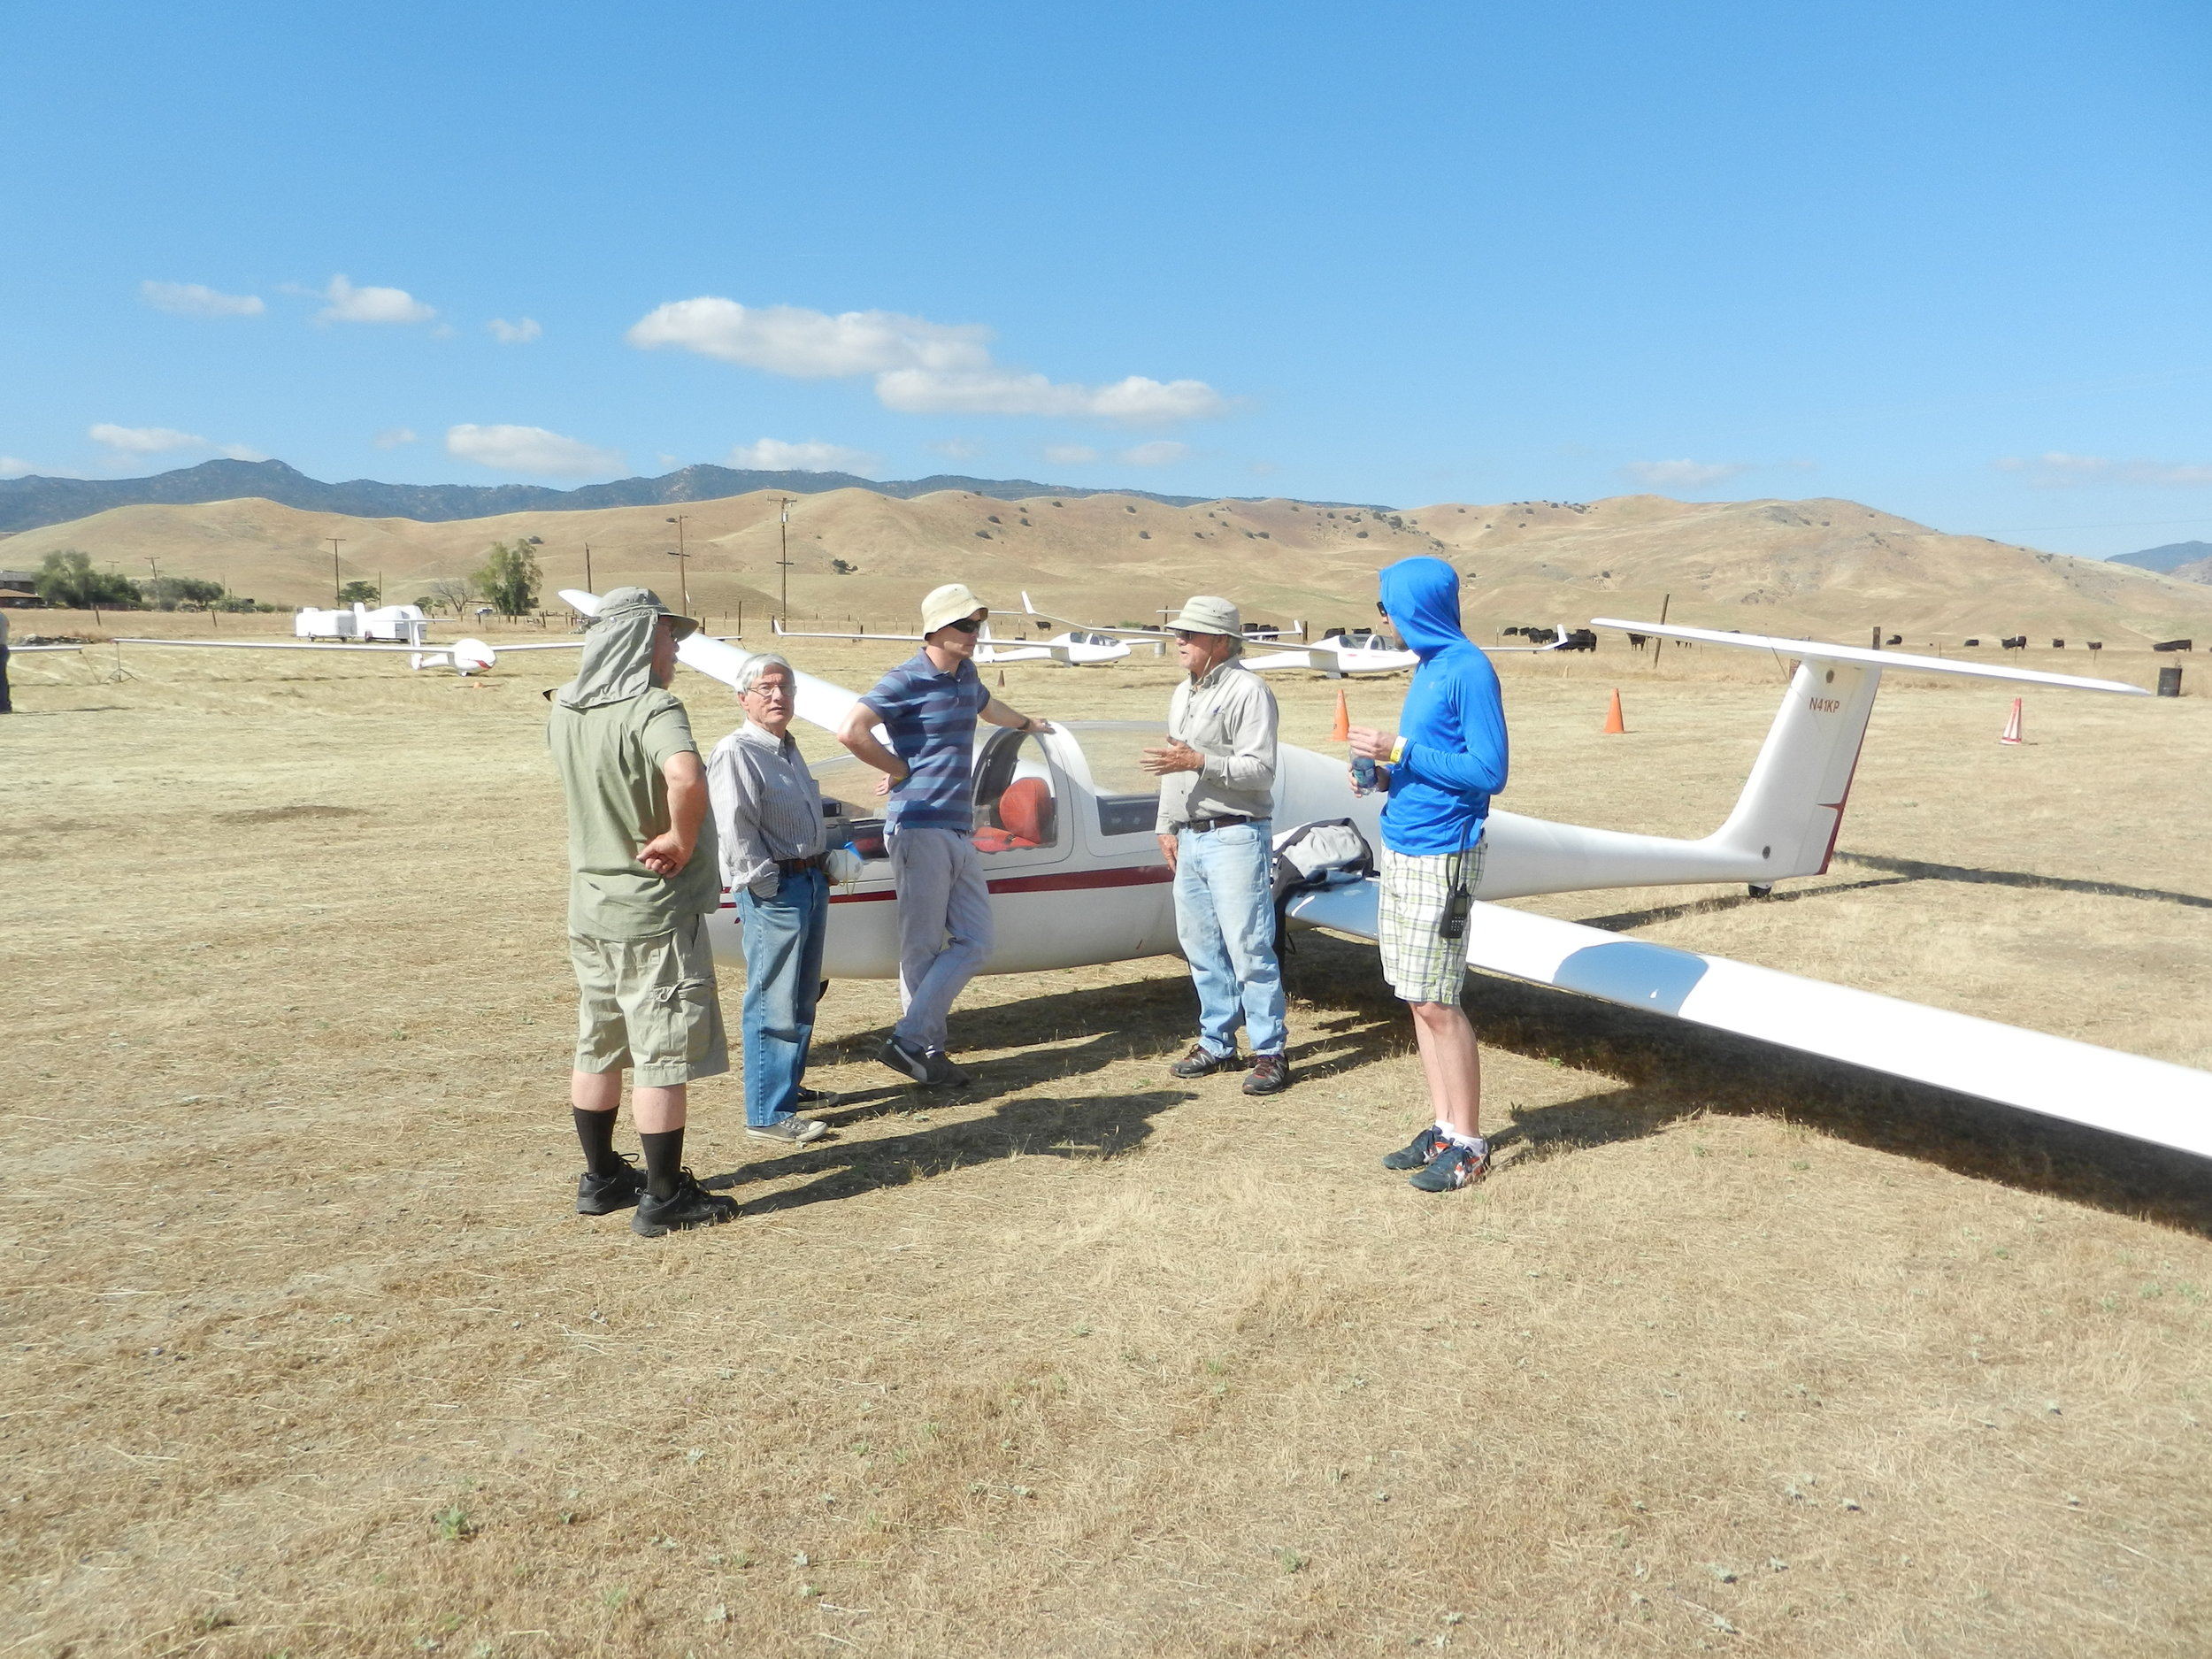 Buzz Graves gives ground instruction prior to area checkout flights for the newbies. Note the clouds in the background just begging them over.